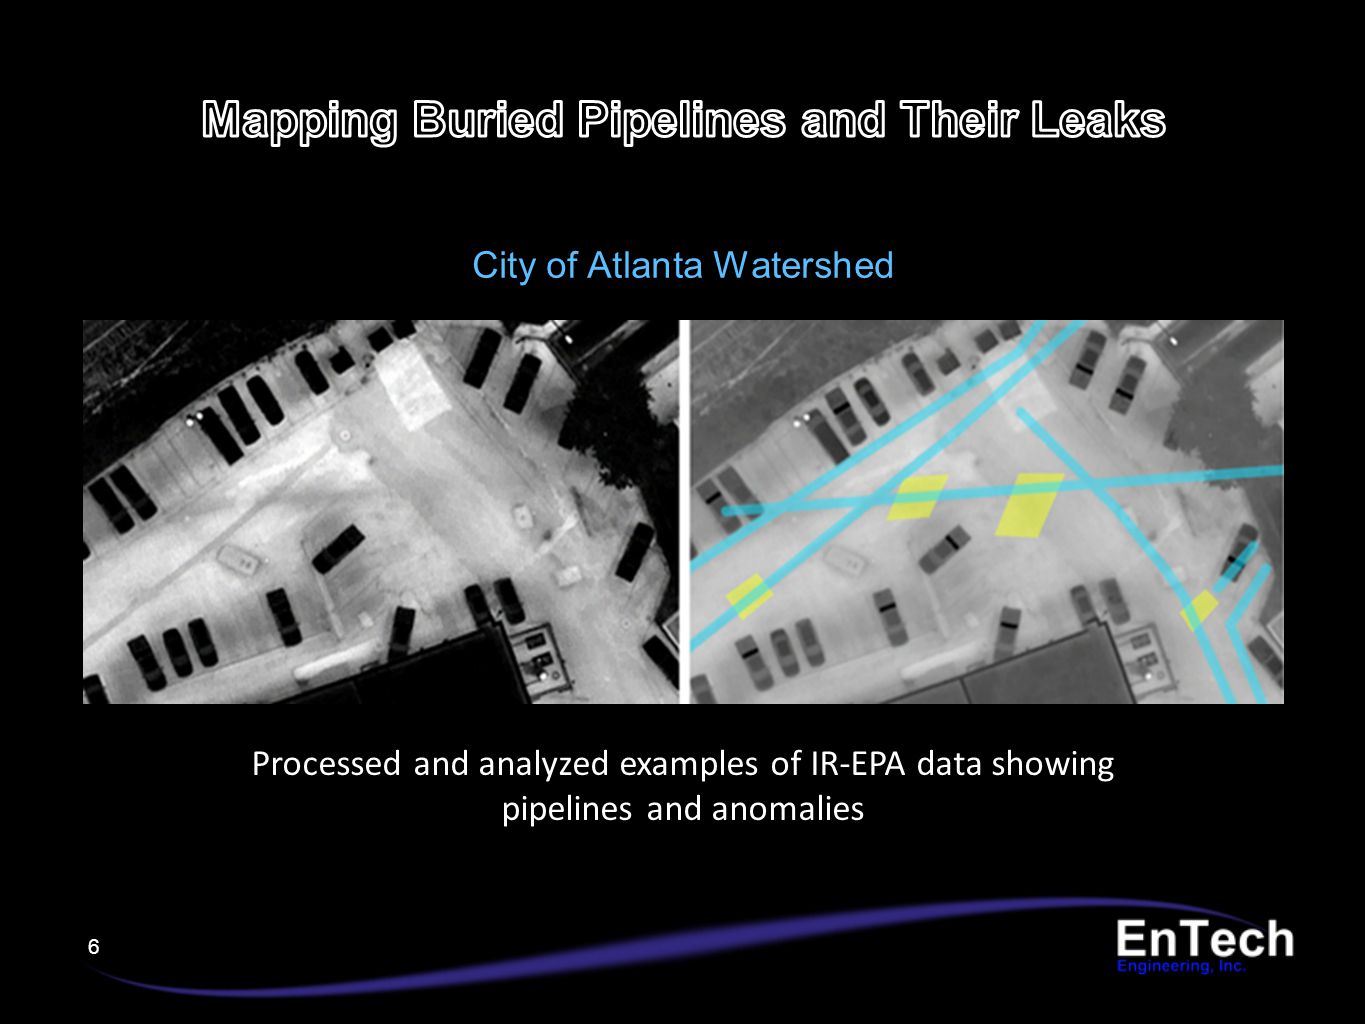 6 Processed and analyzed examples of IR-EPA data showing pipelines and anomalies City of Atlanta Watershed